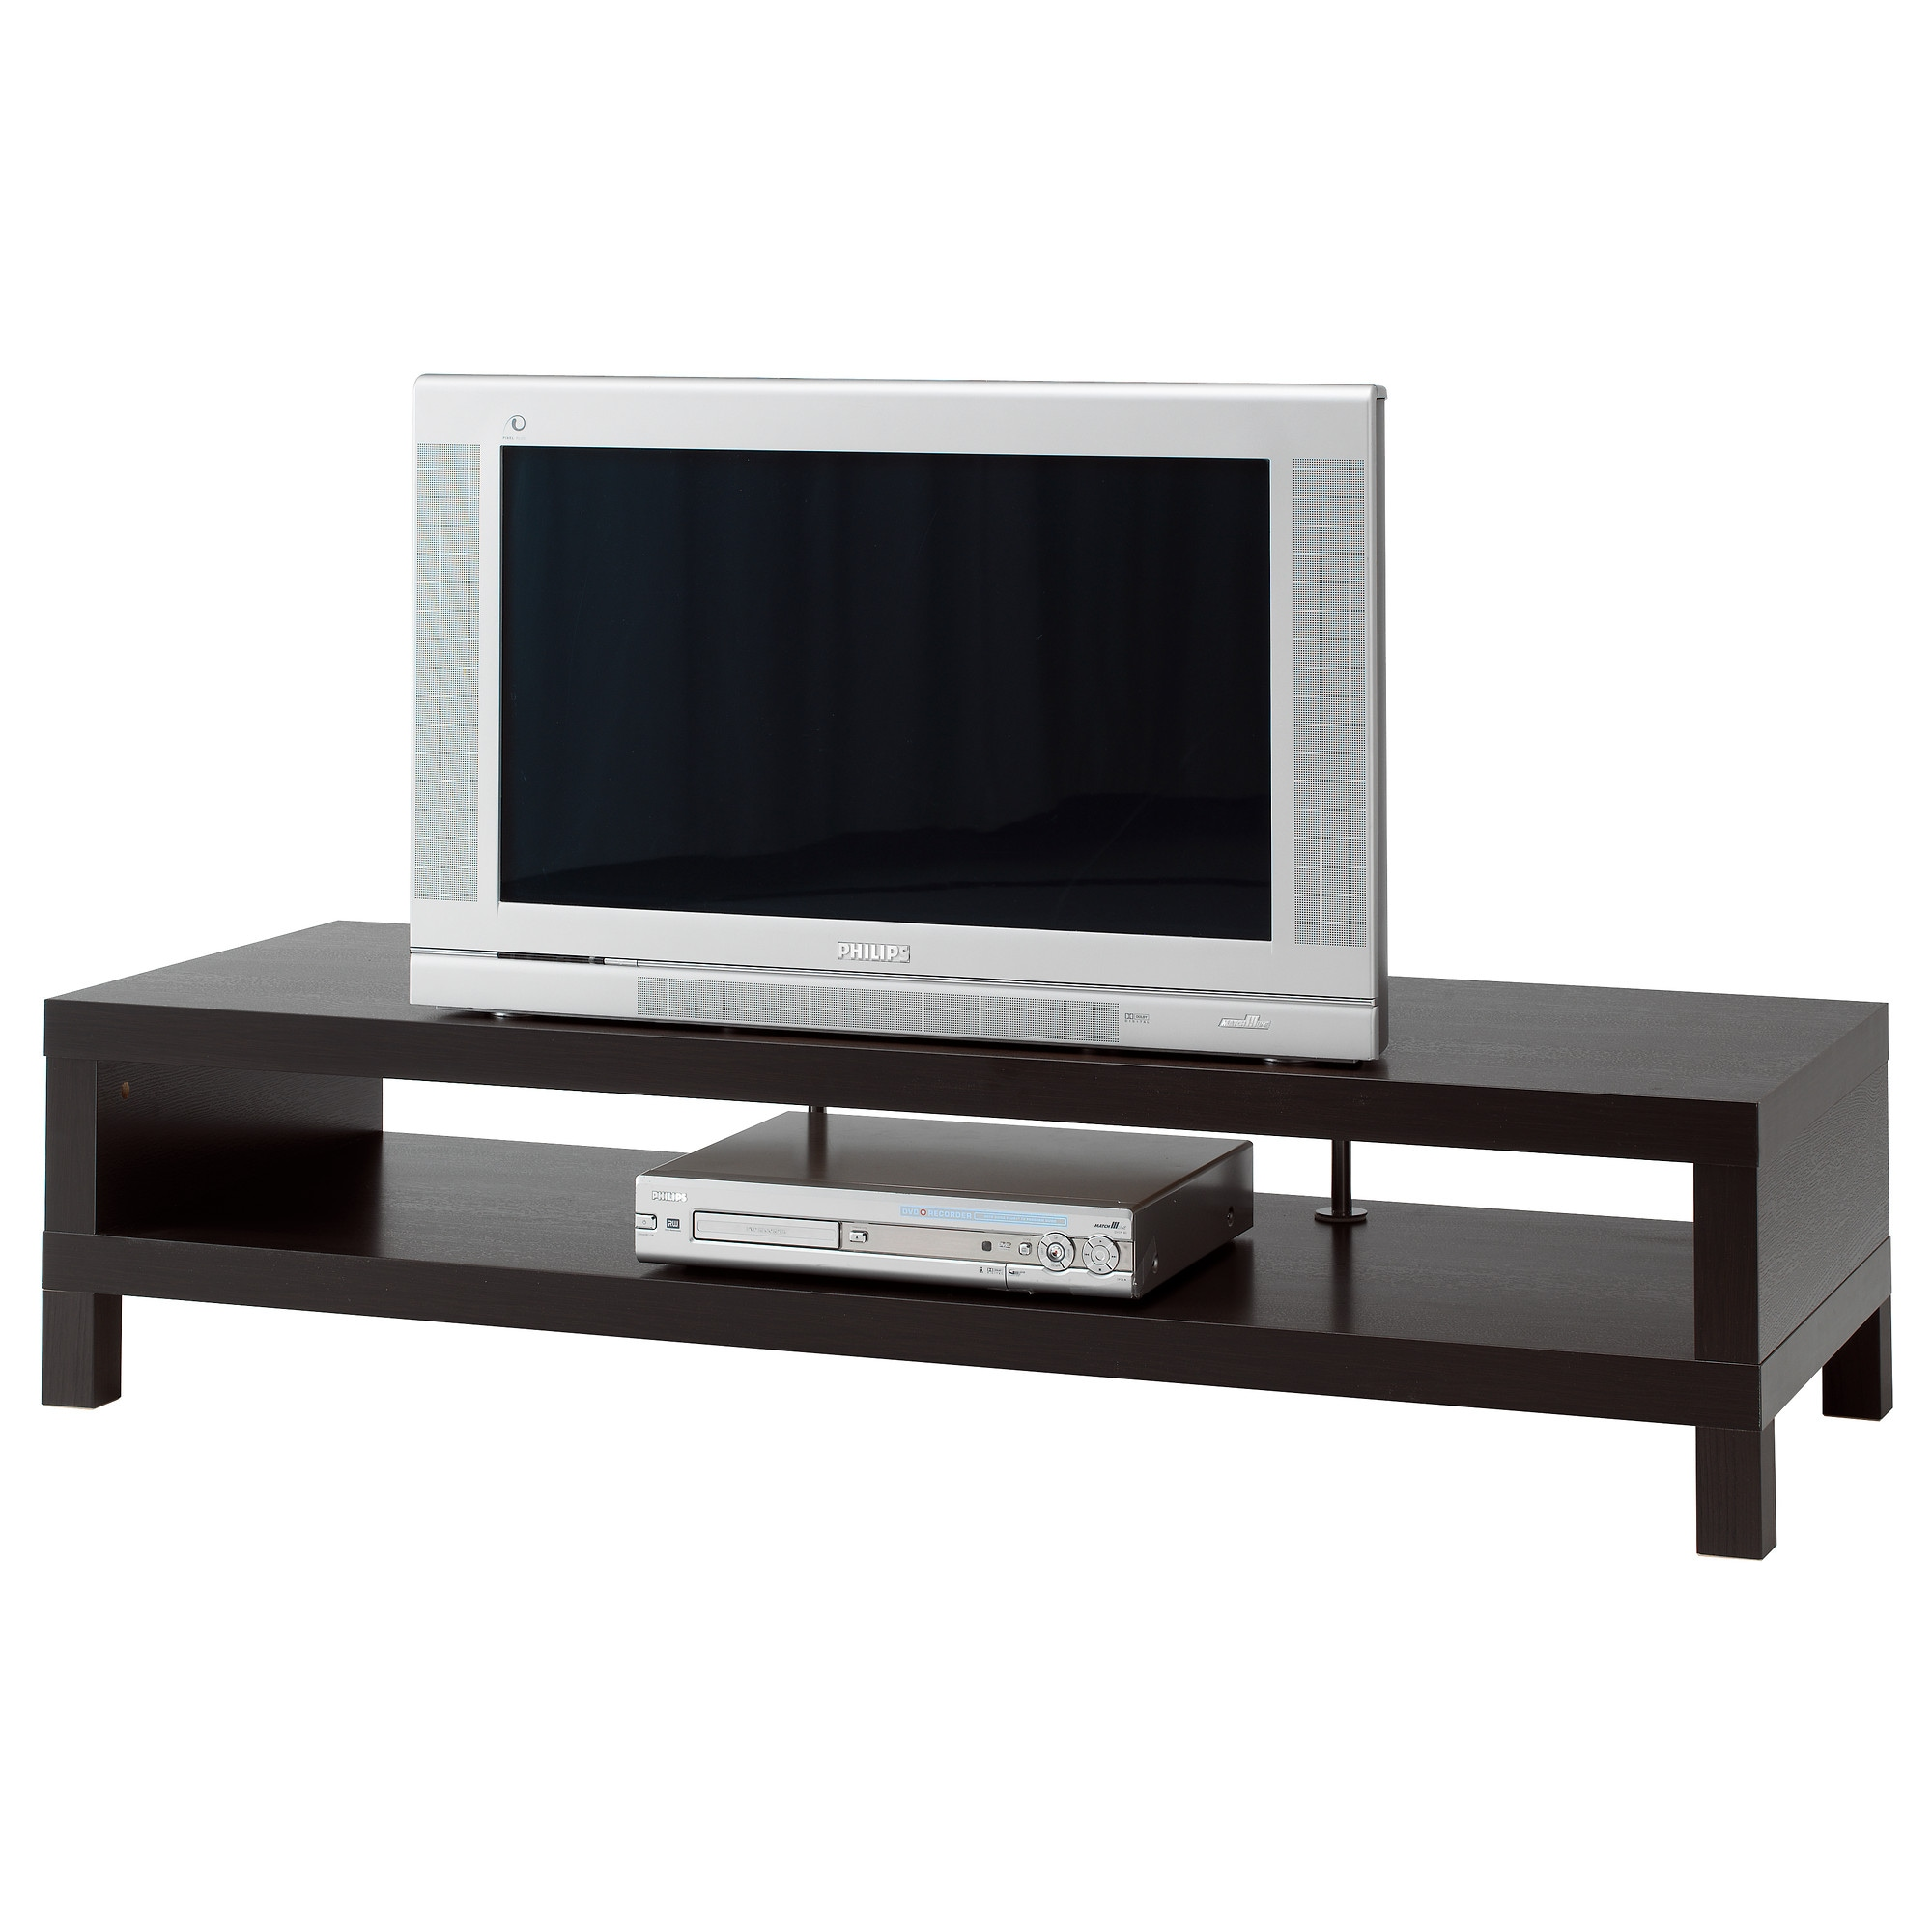 Lack Tv Bench Ikea # Support Tv Pour Meuble